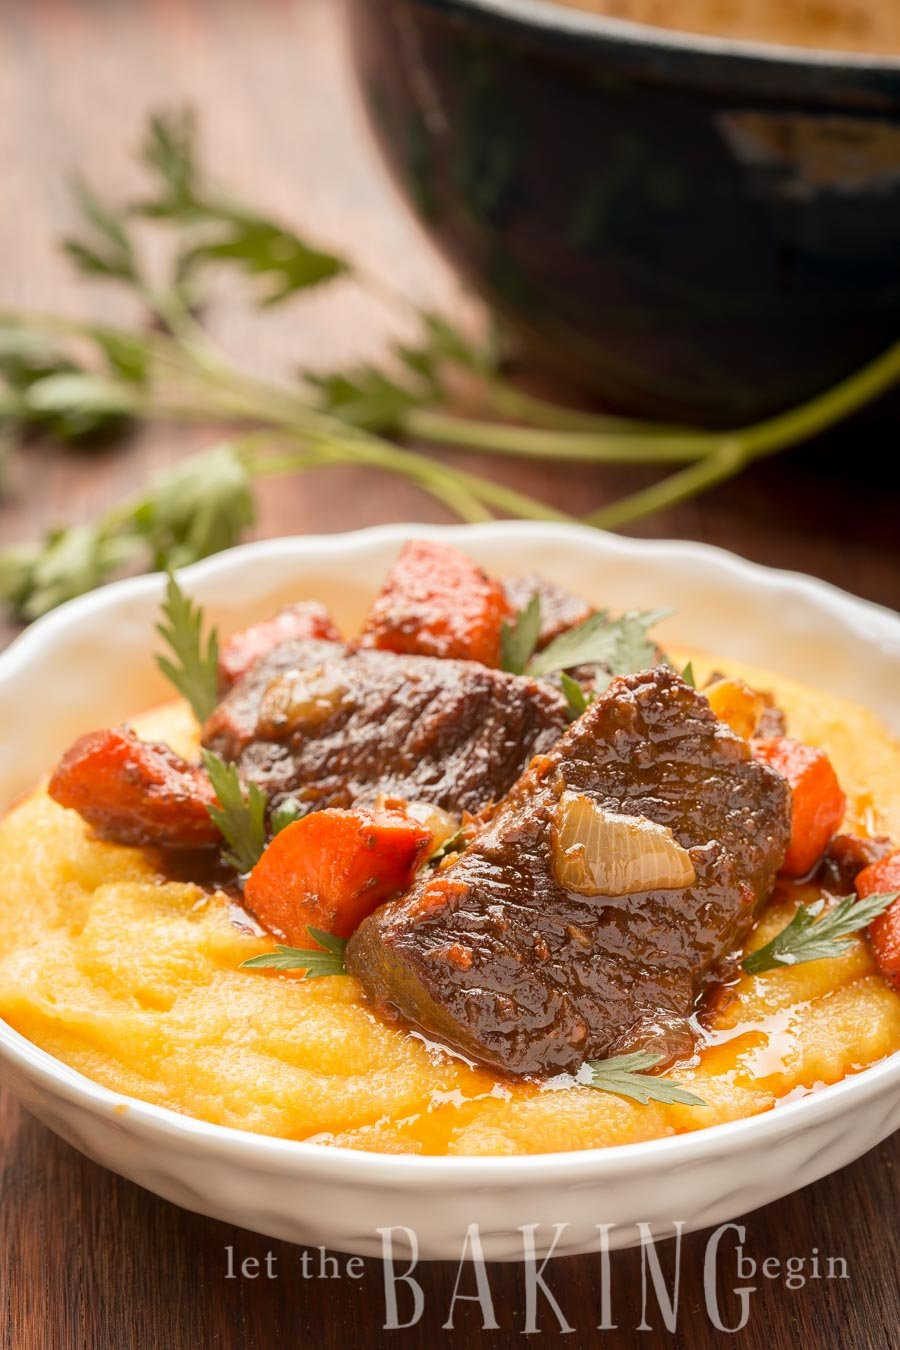 Mashed potatoes topped with vegetables, fresh greens, and braised short ribs in a white decorative bowl.